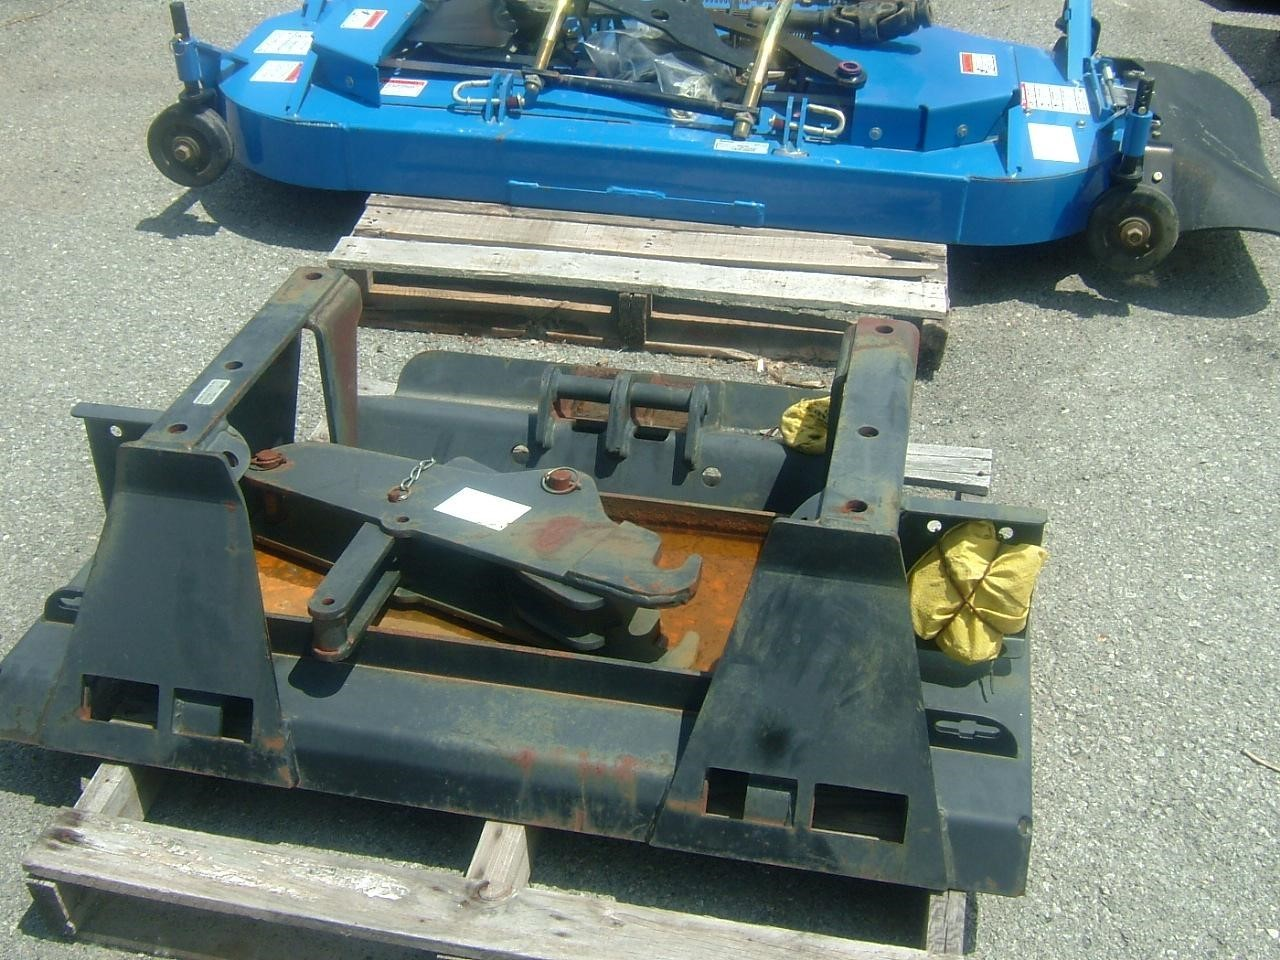 Woods 46637 Loader and Skid Steer Attachment